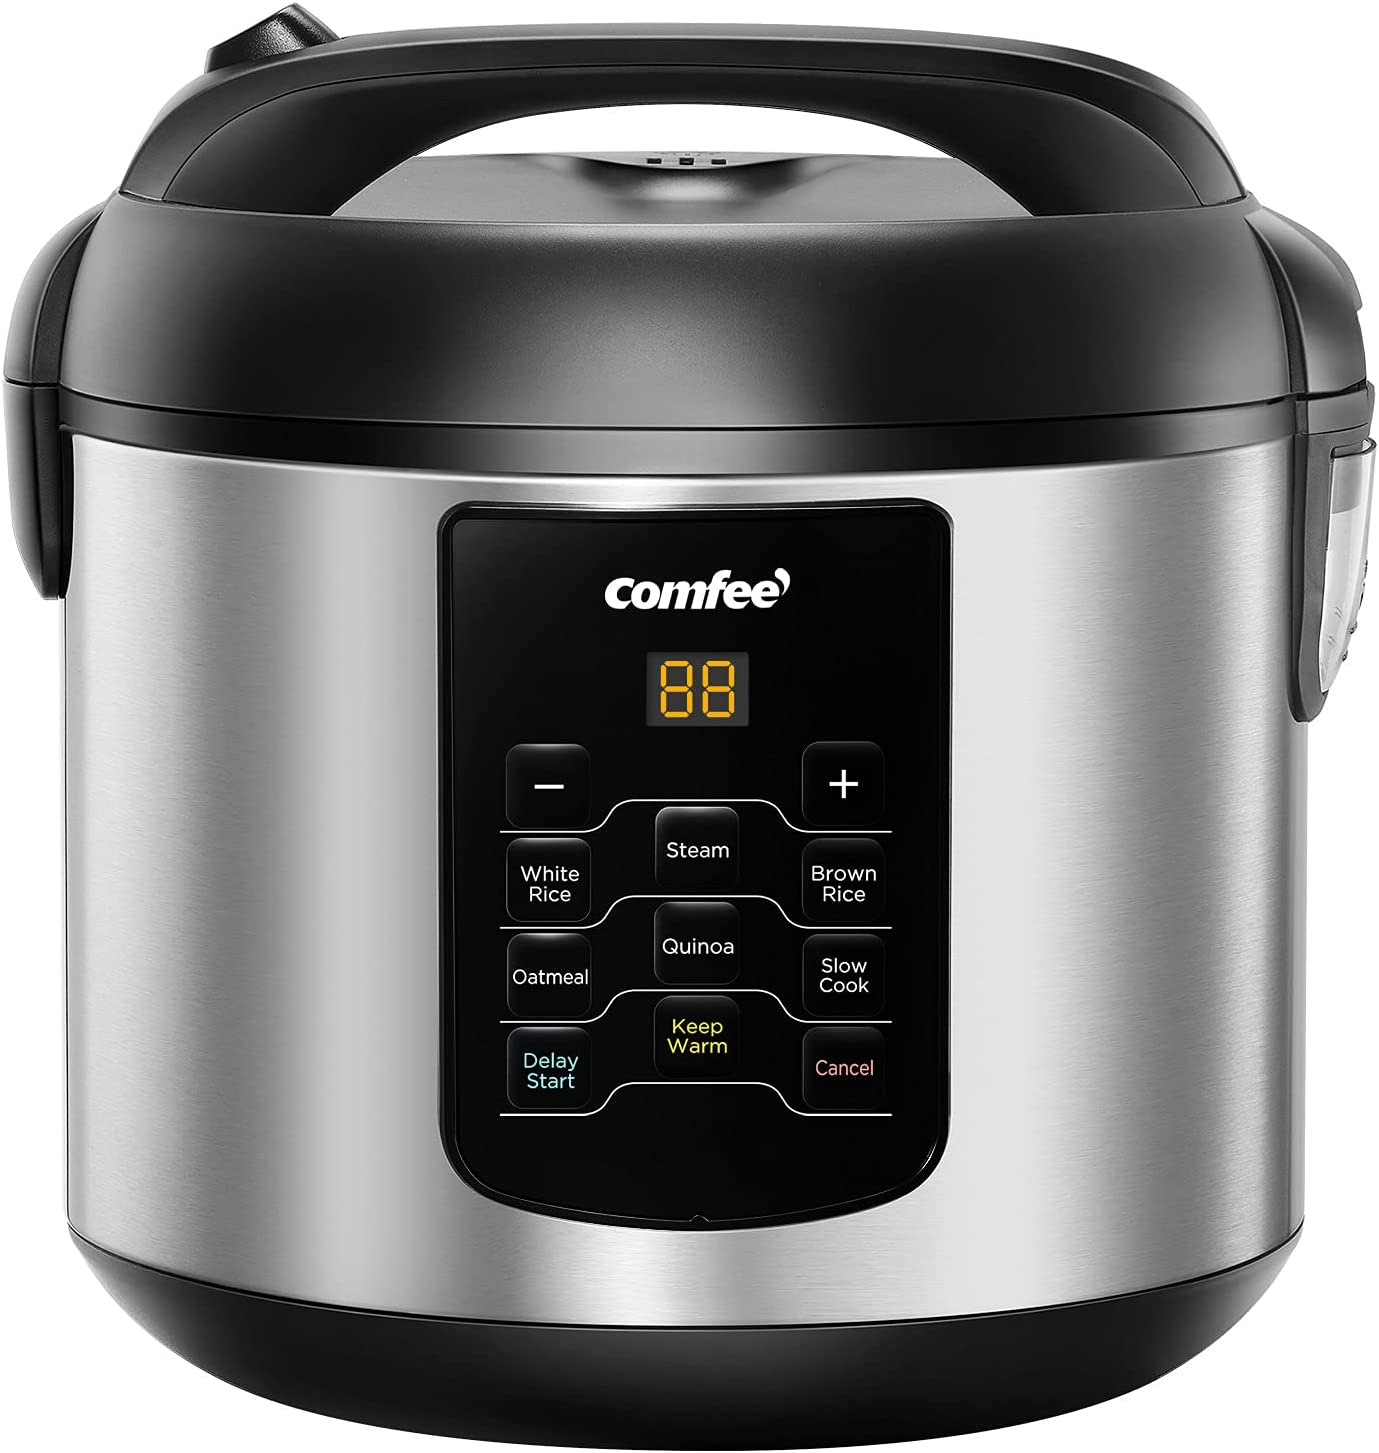 COMFEE' Rice Cooker, 6-in-1 Stainless Steel Multi Cooker, Slow Cooker, Steamer, Saute, and Warmer, 2 QT, 8 Cups Cooked, Brown Rice, Quinoa and Oatmeal, 6 One-Touch Programs